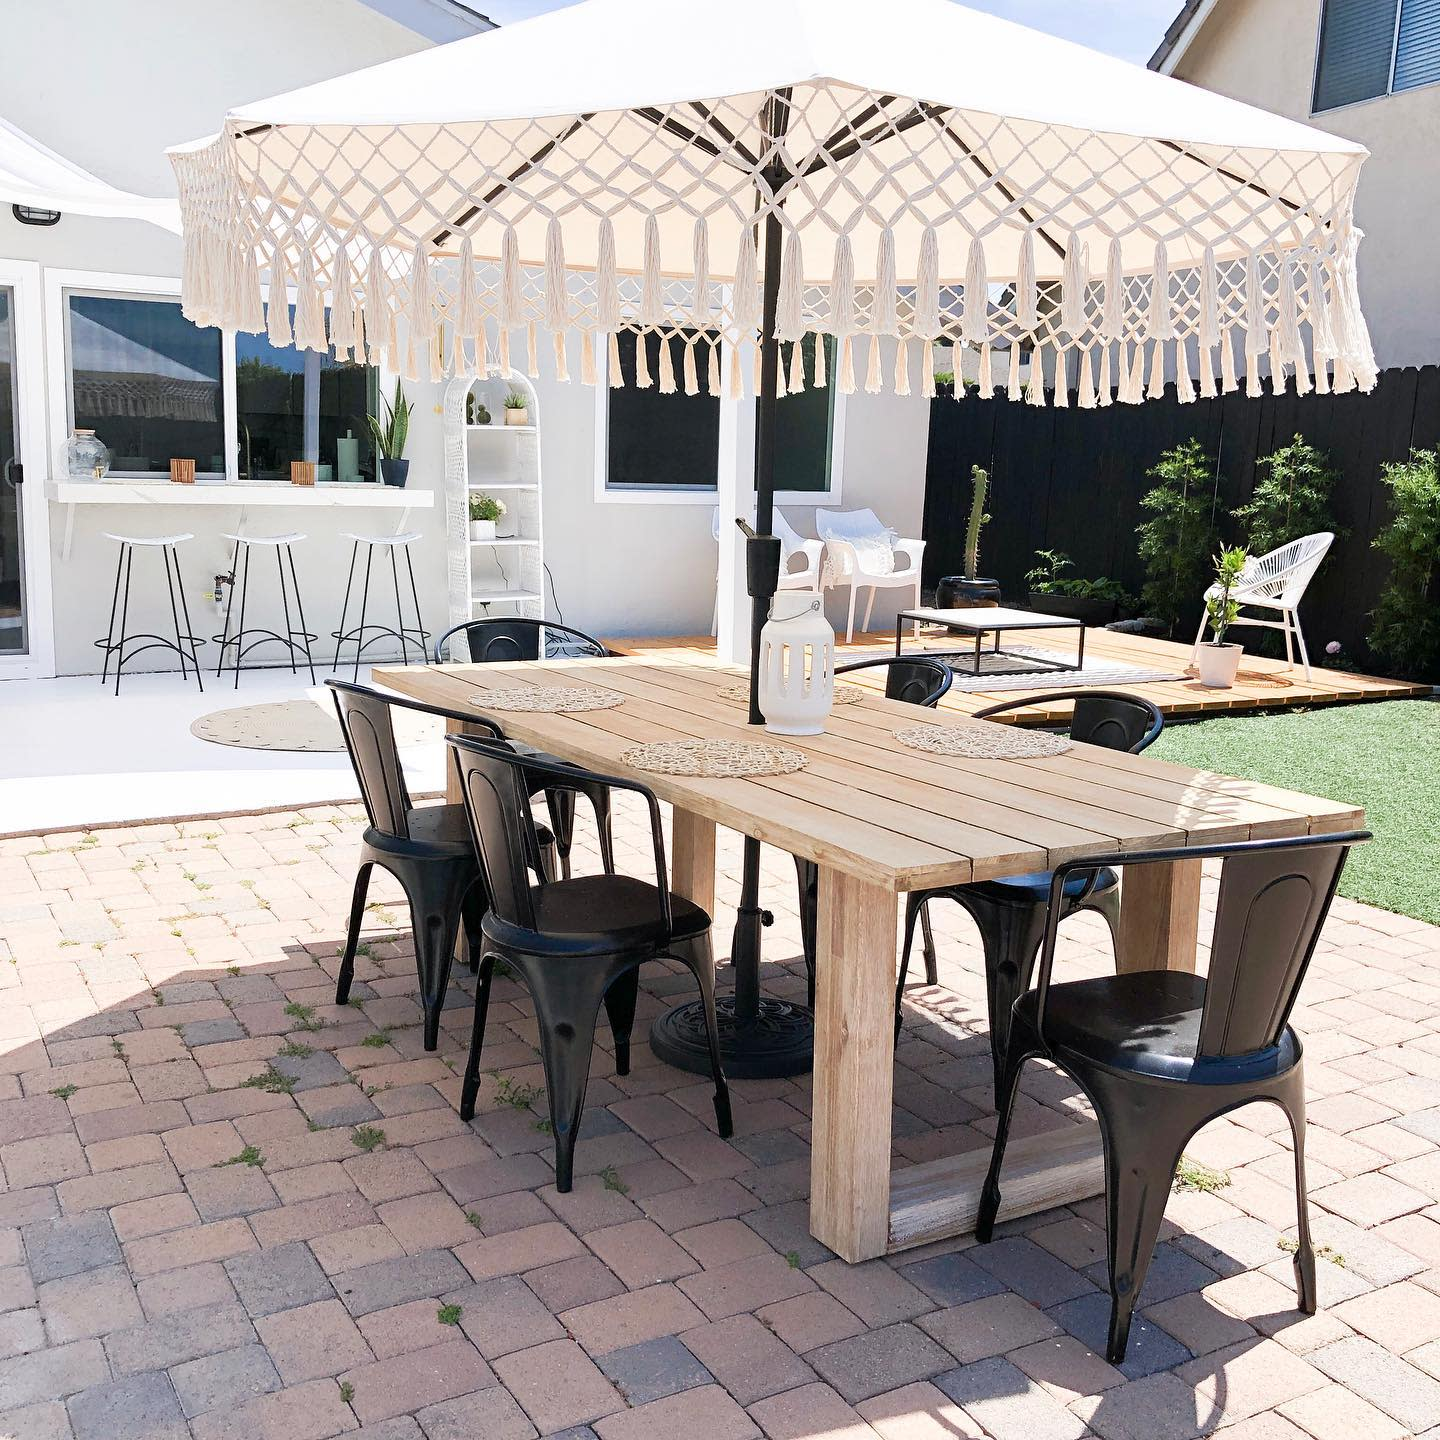 Dining Backyard Ideas on a Budget -maggie_minhas_at_home